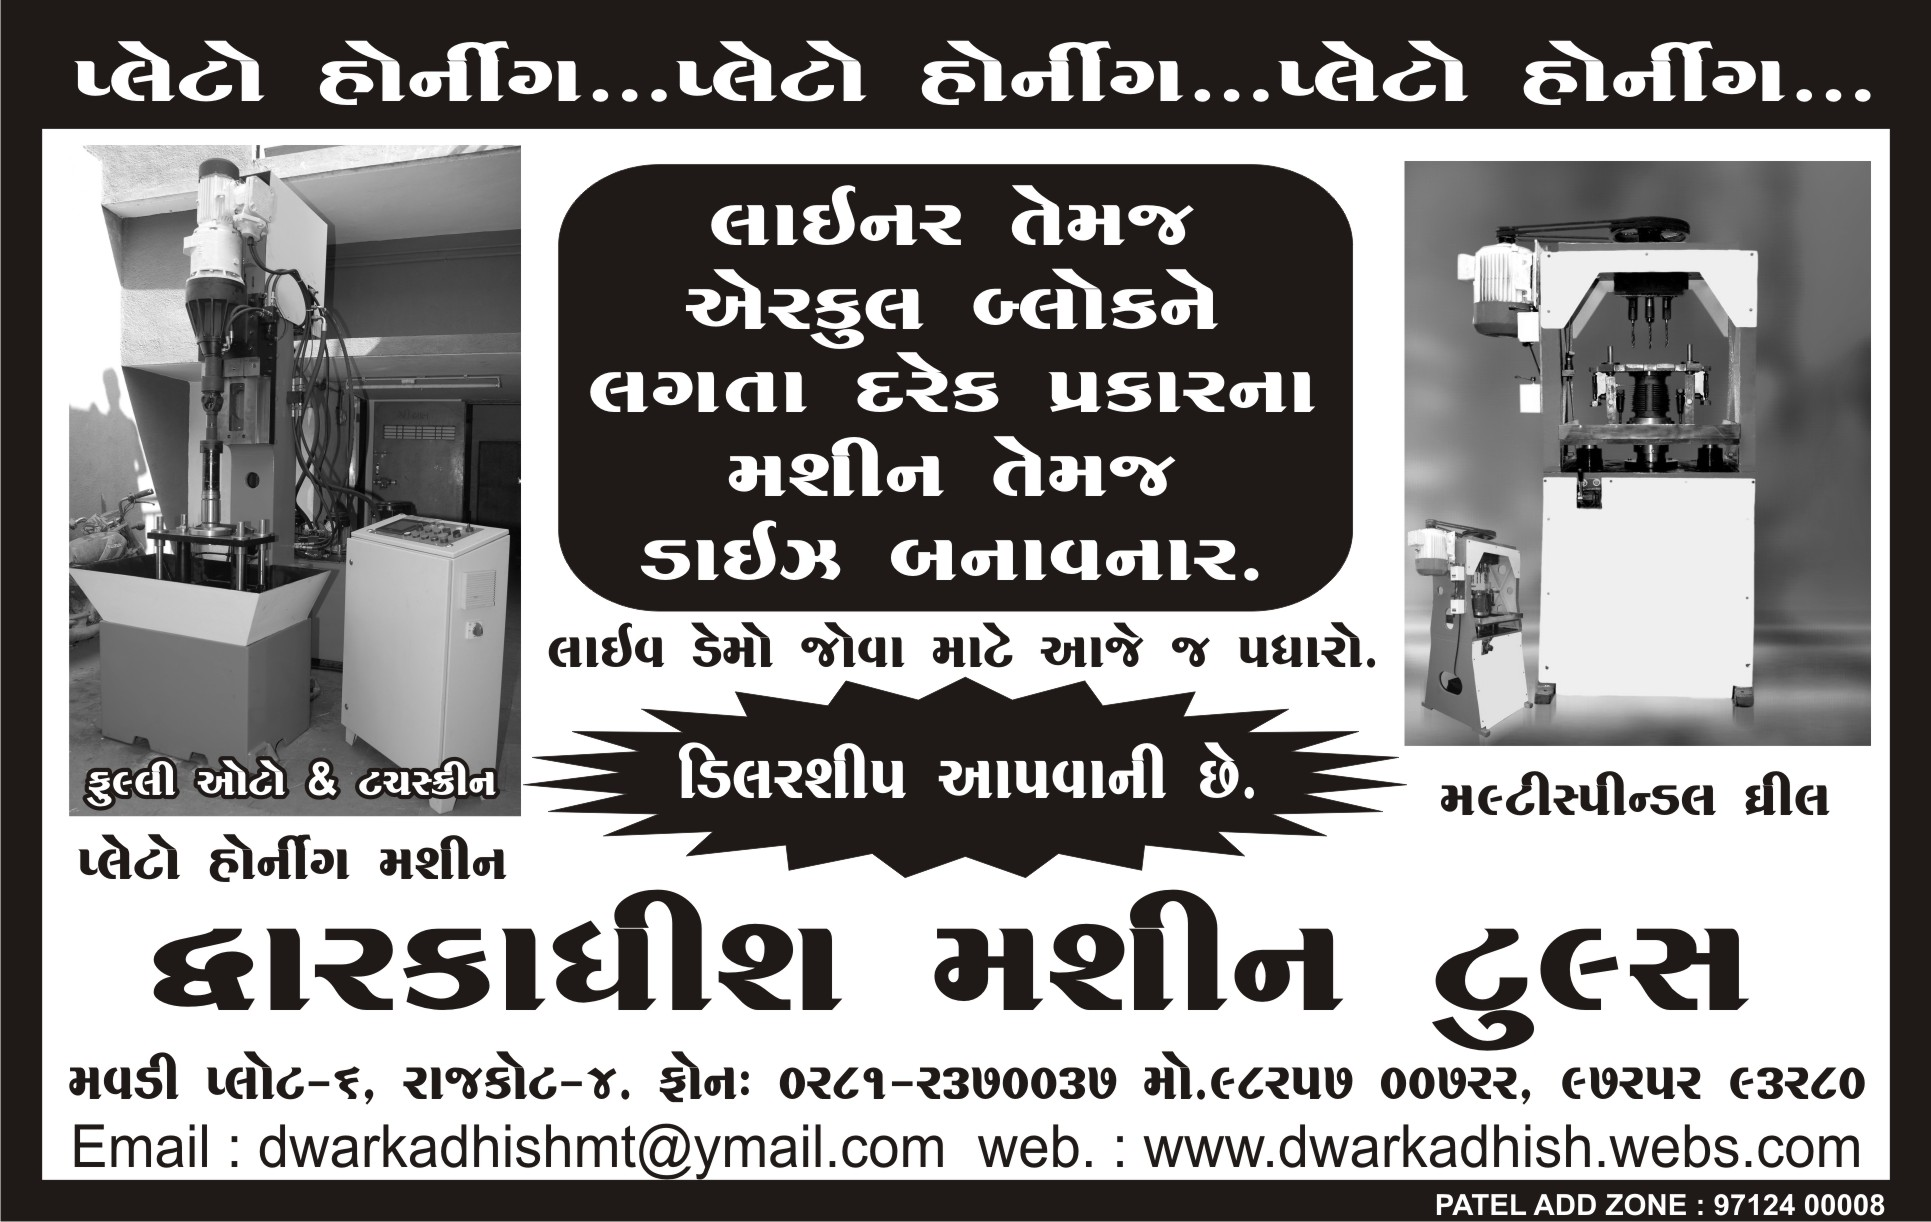 For My New Machine launching news paper add